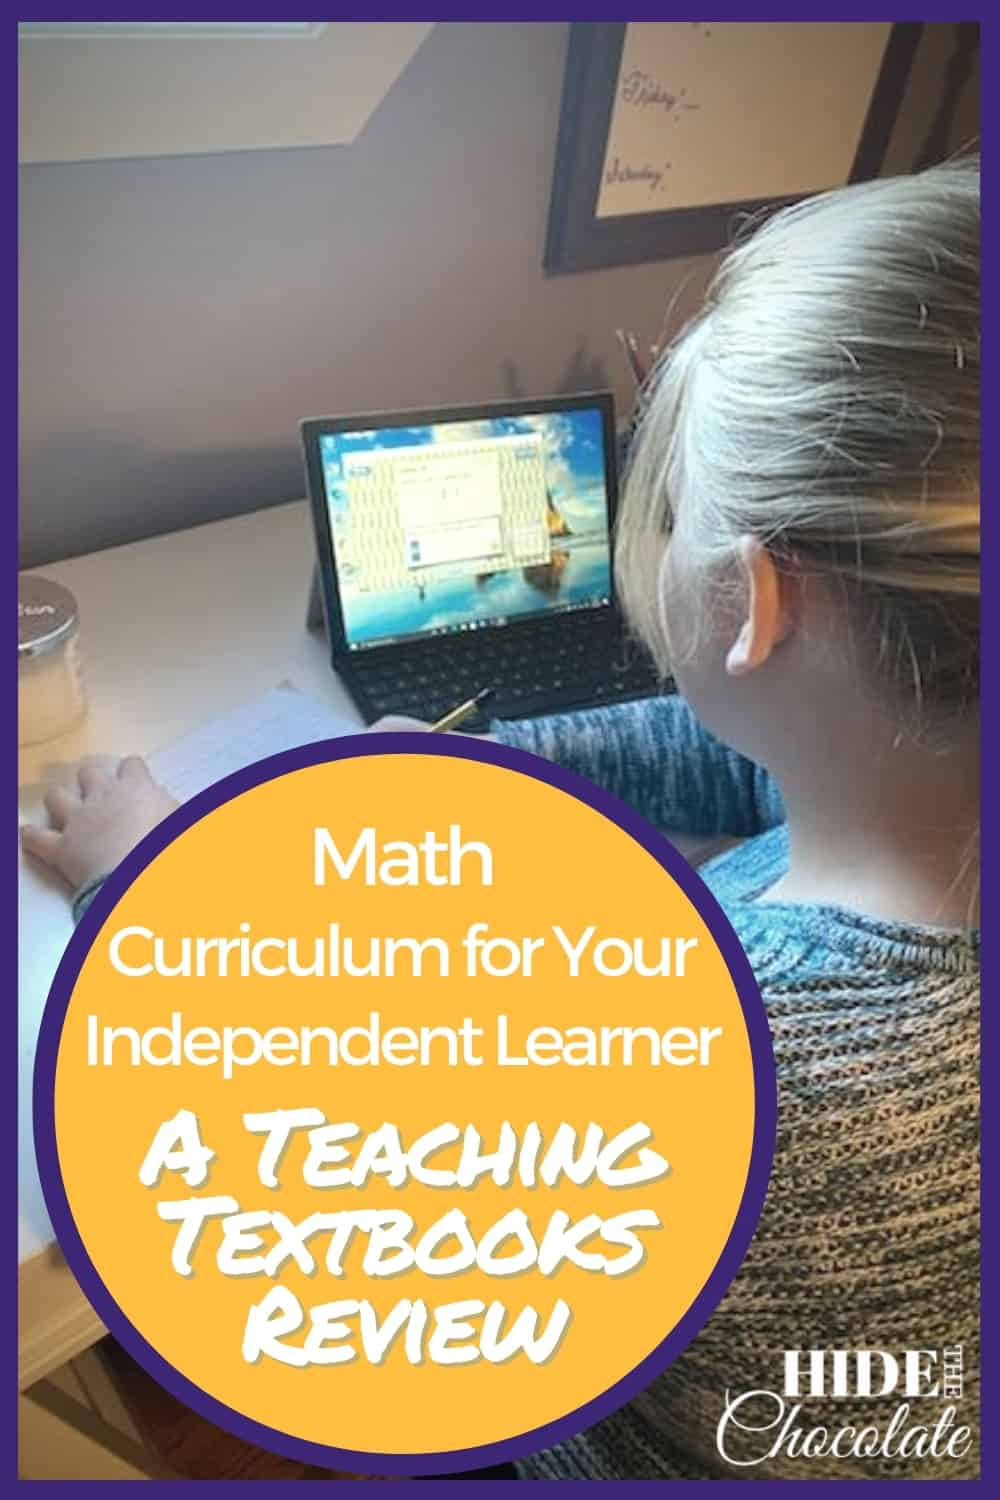 Math Curriculum for Your Independent Learner: A Teaching Textbooks Review